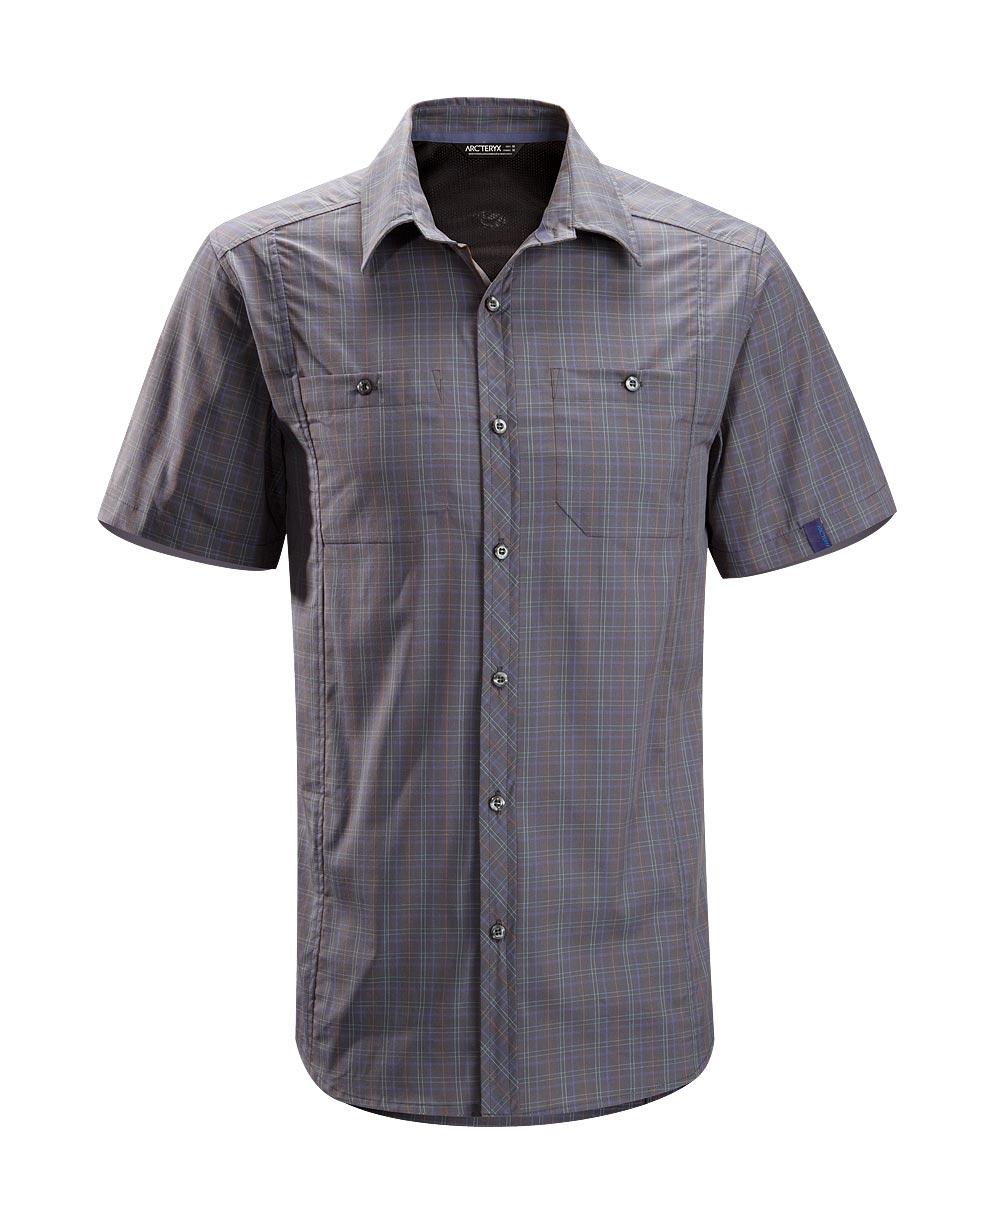 Arcteryx Tungsten Borderline Shirt SS - New